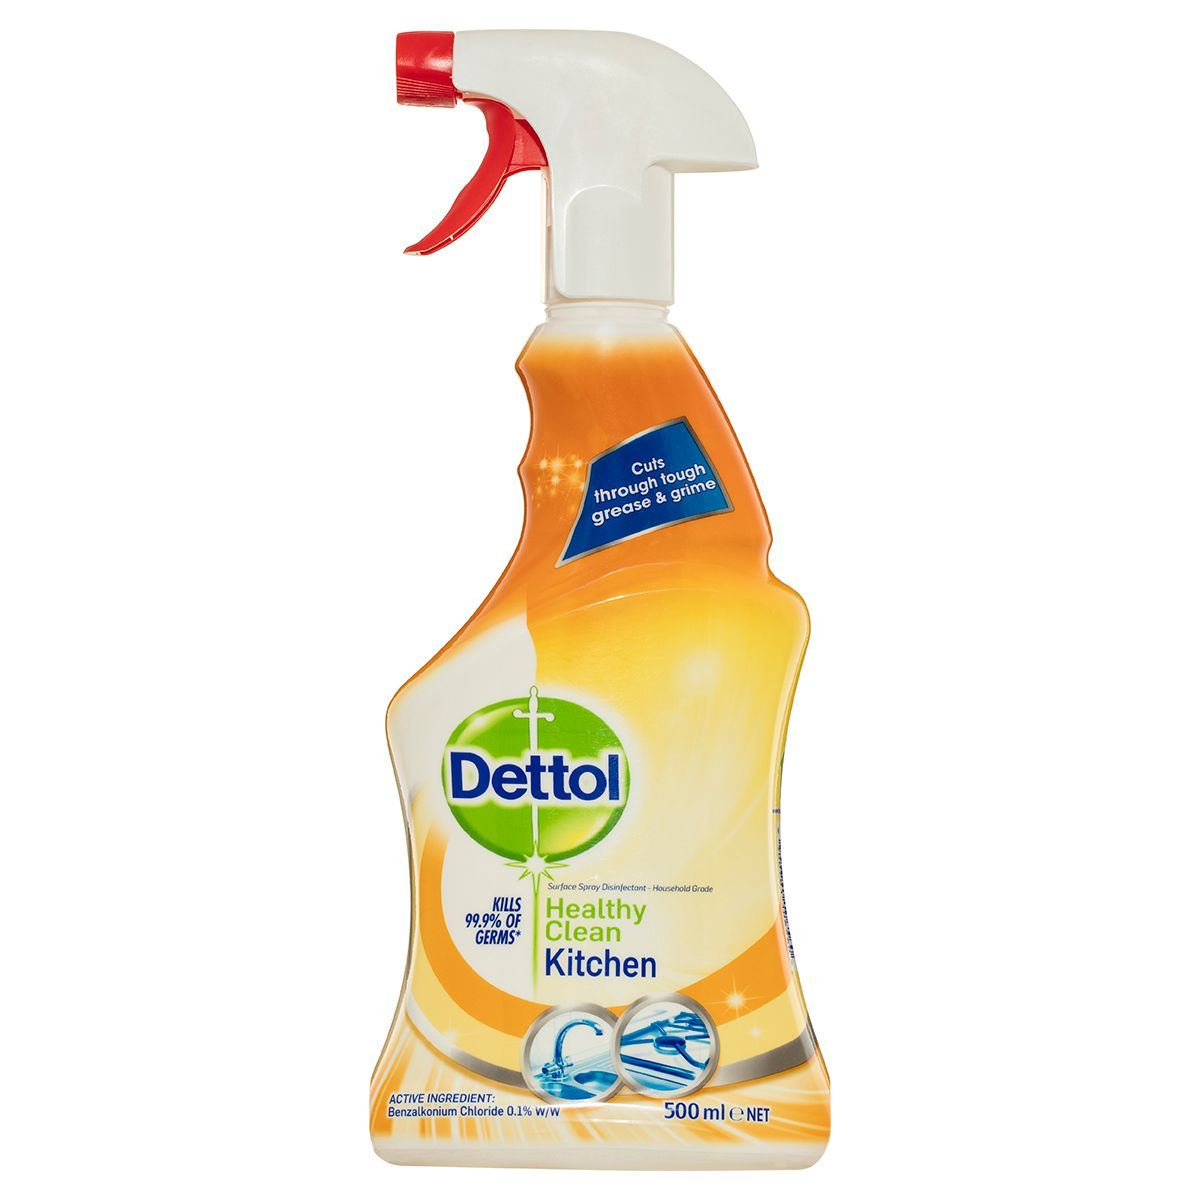 Dettol healthy clean kitchen